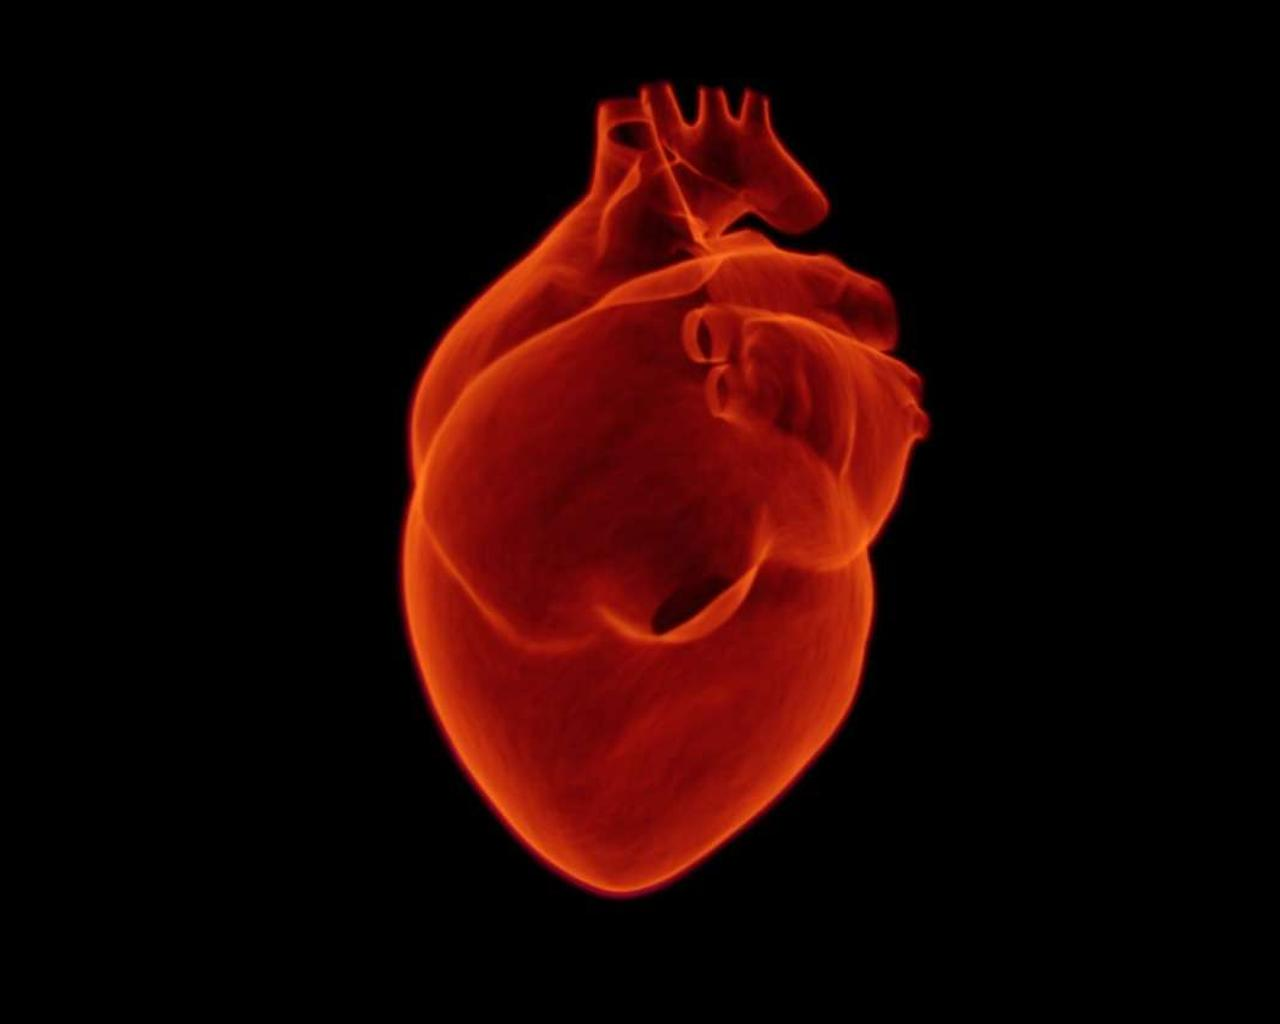 Recovered COVID-19 Patients Can Suffer Long-Term Heart Damage, New Studies Say -- Shall We Become More Careful?